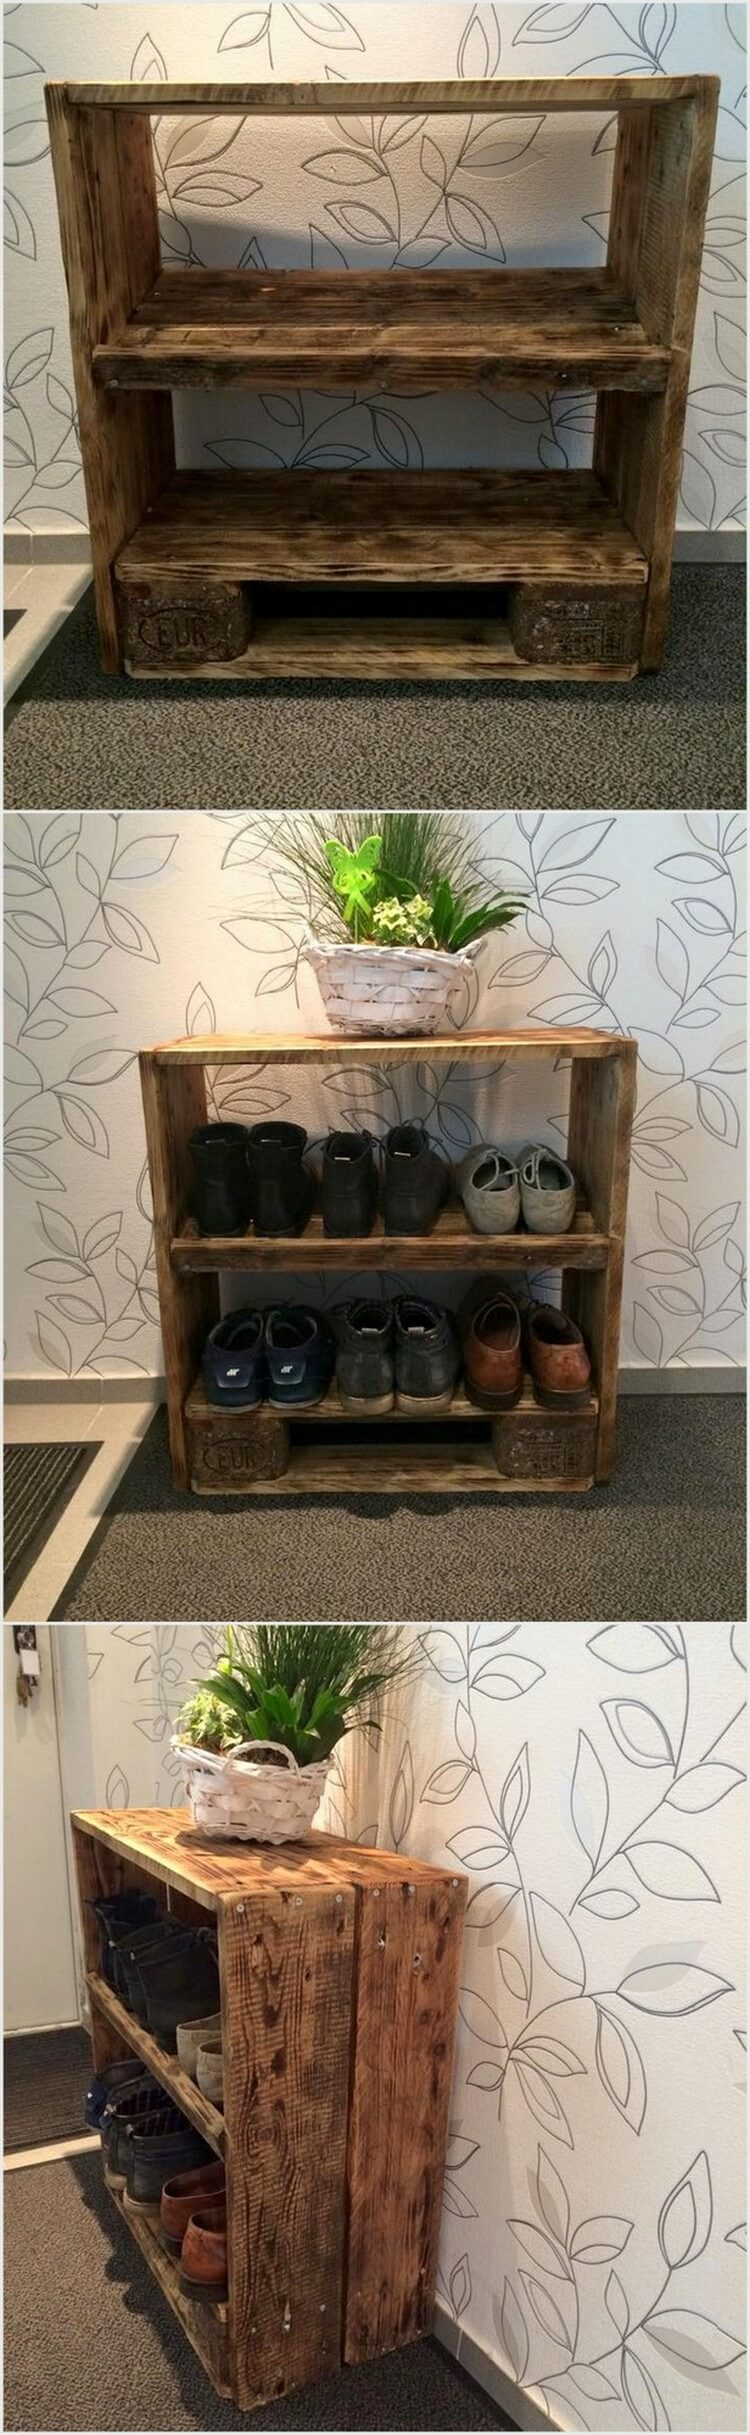 Shipping Wood Pallet Shoe Rack